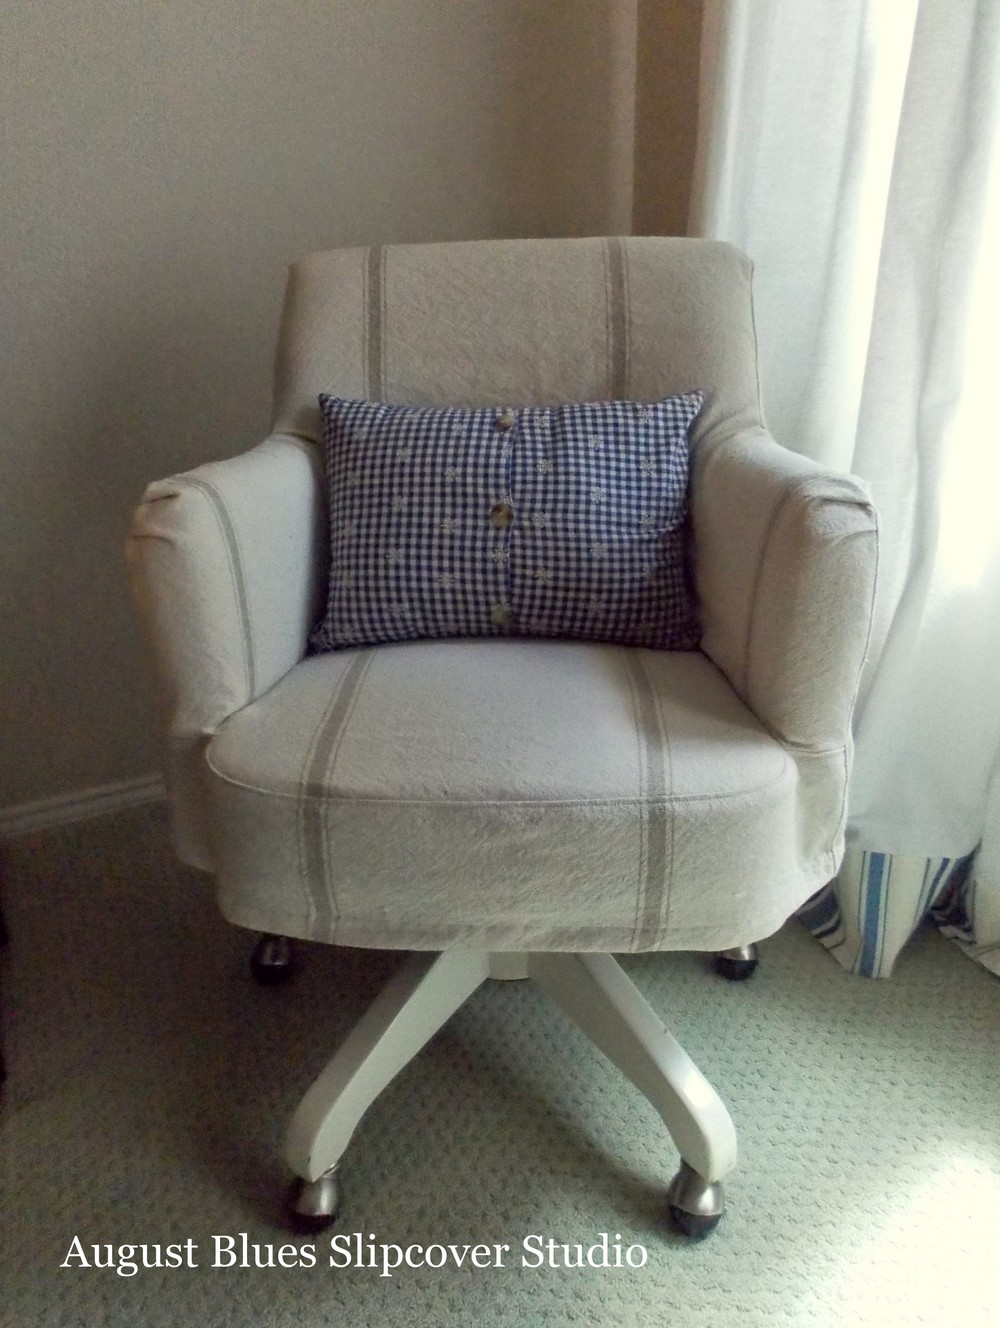 August Blues - Desk Chair with grain sack slipcover